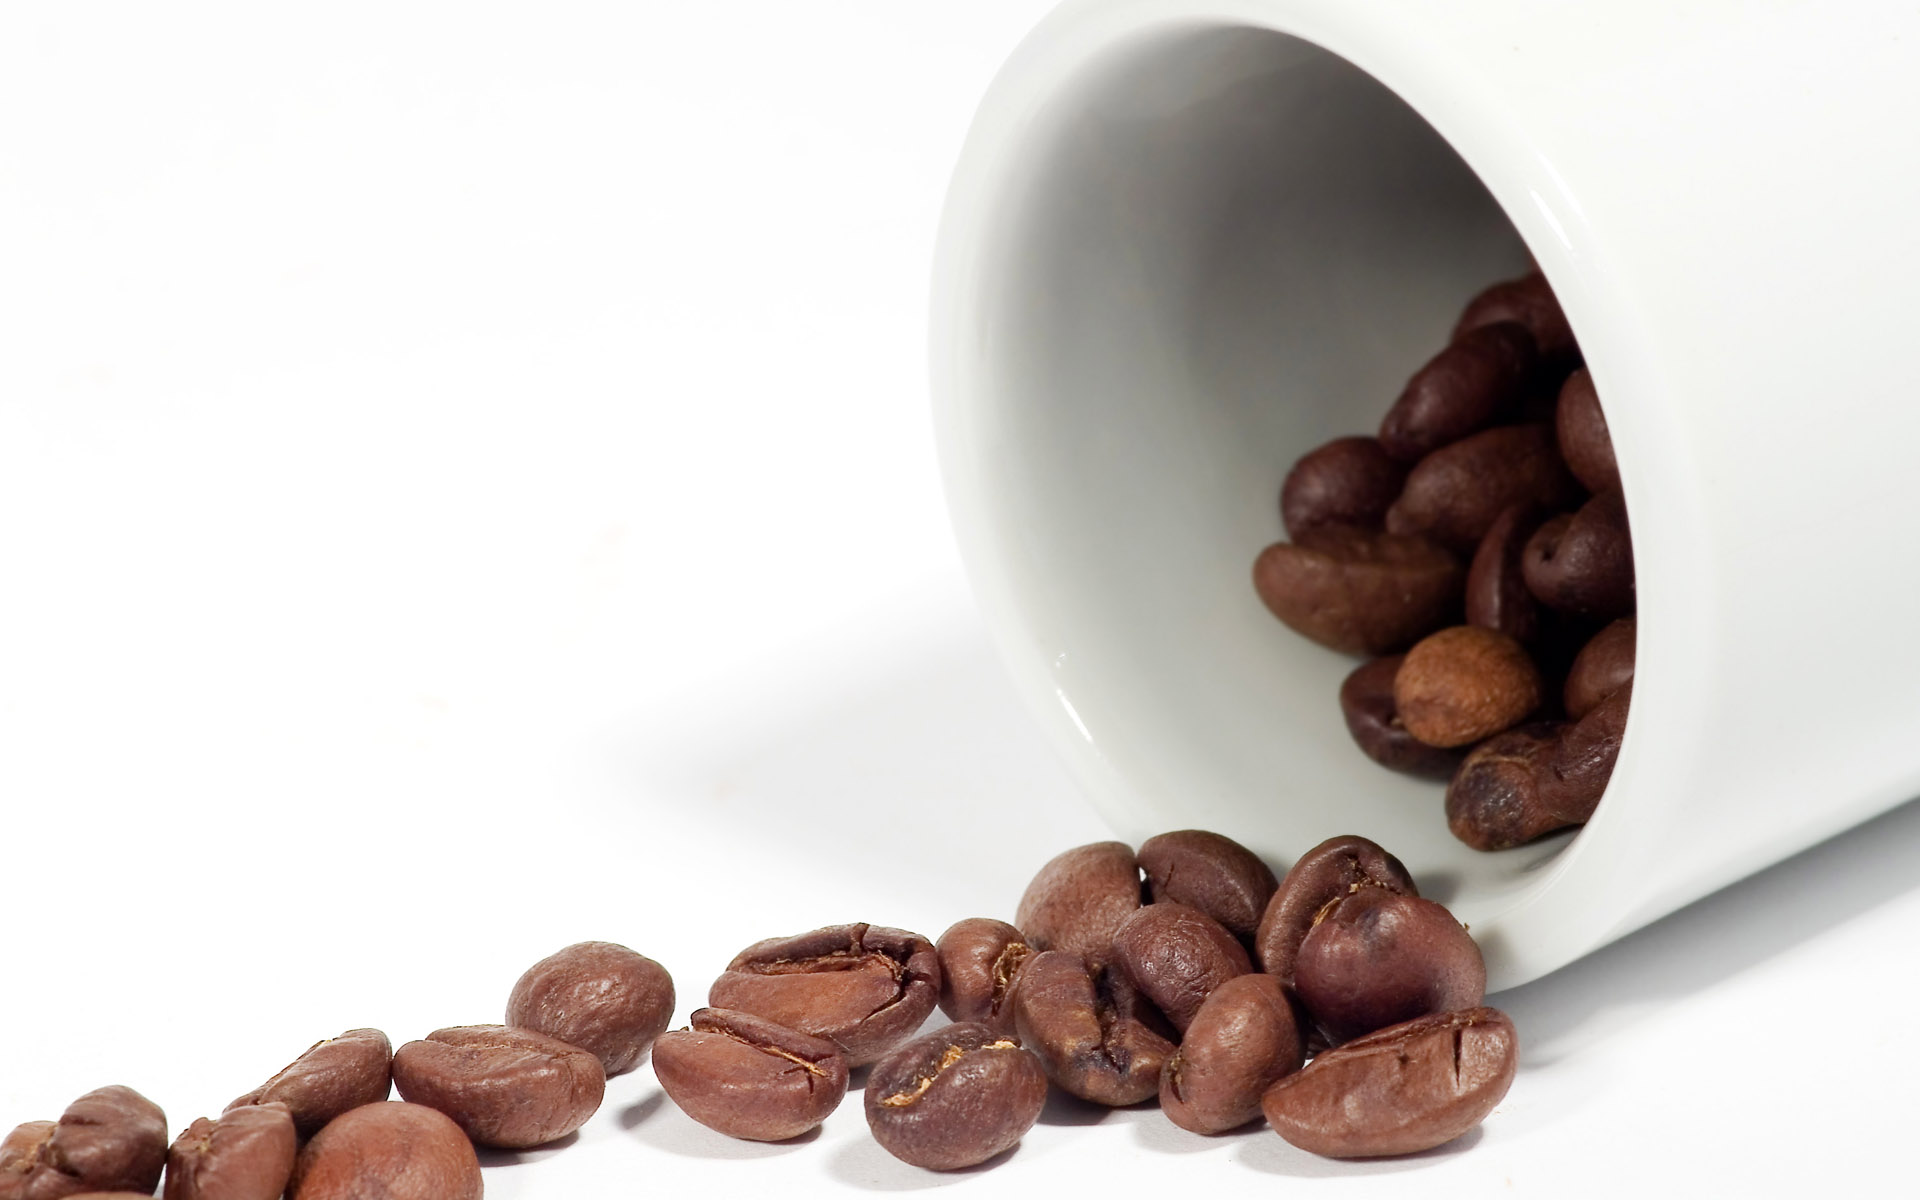 Coffee and coffee beans close-up 15604